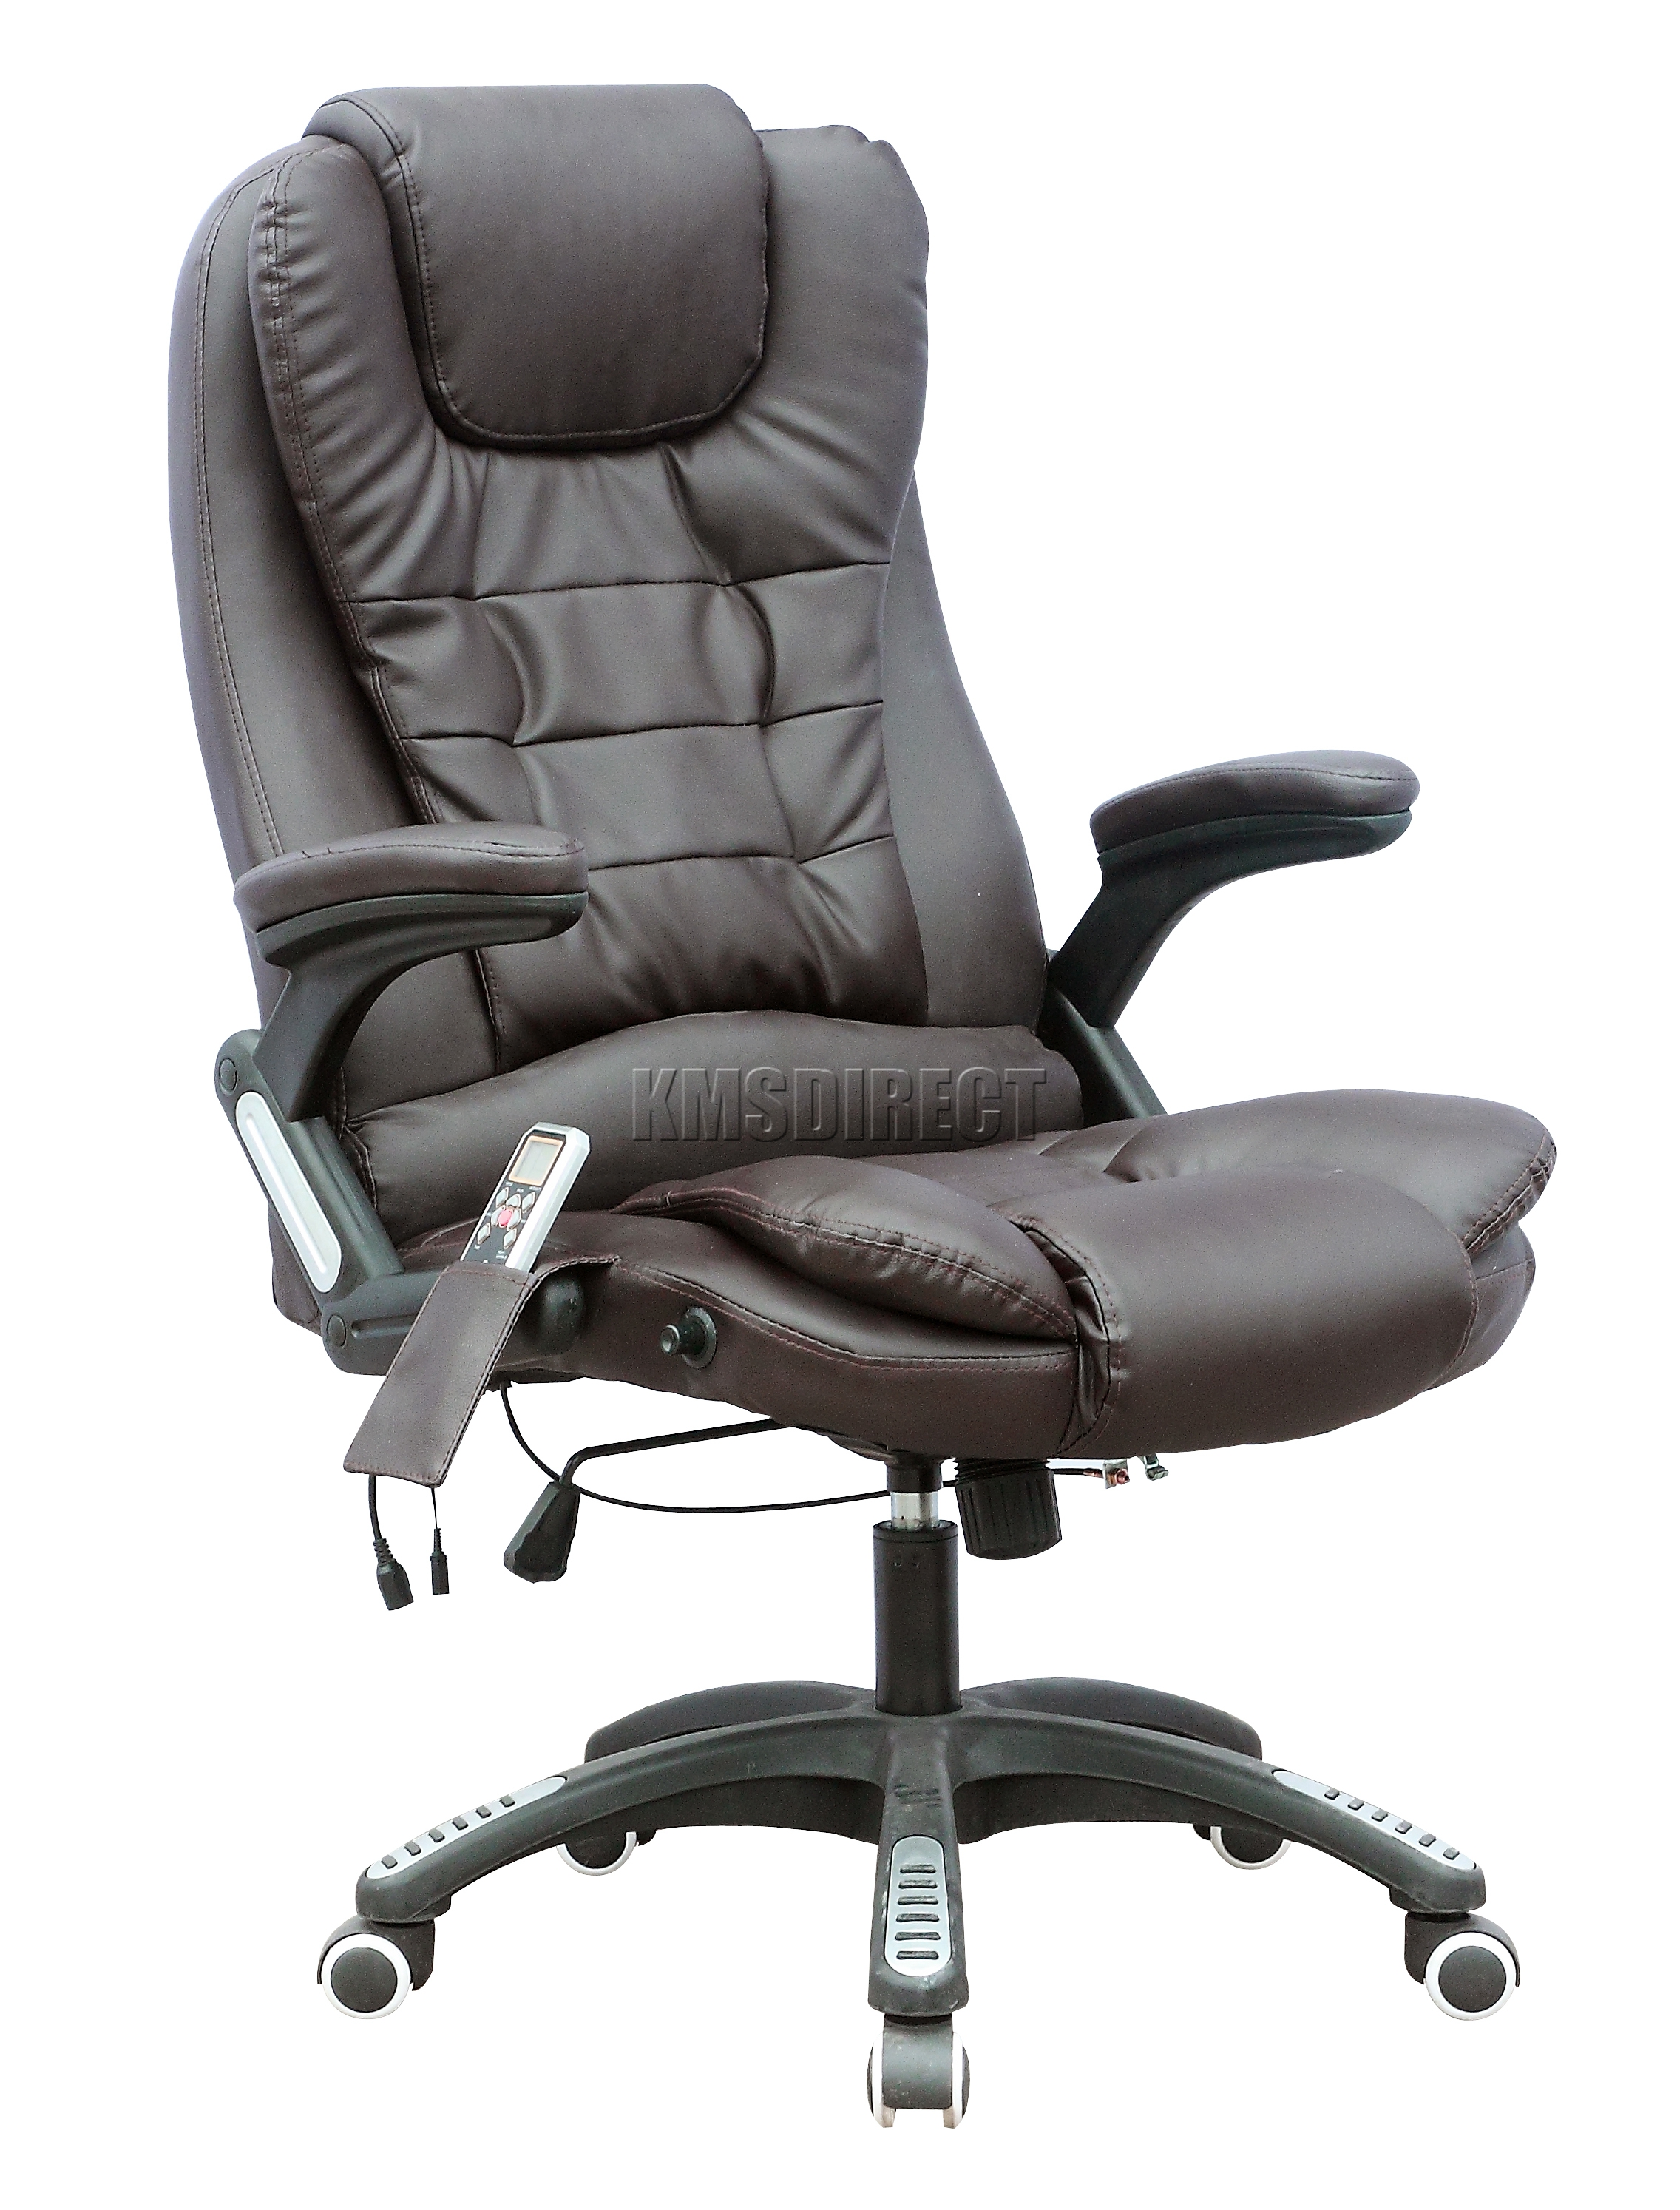 Foxhunter 8025 Leather 6 Point Massage Office Computer